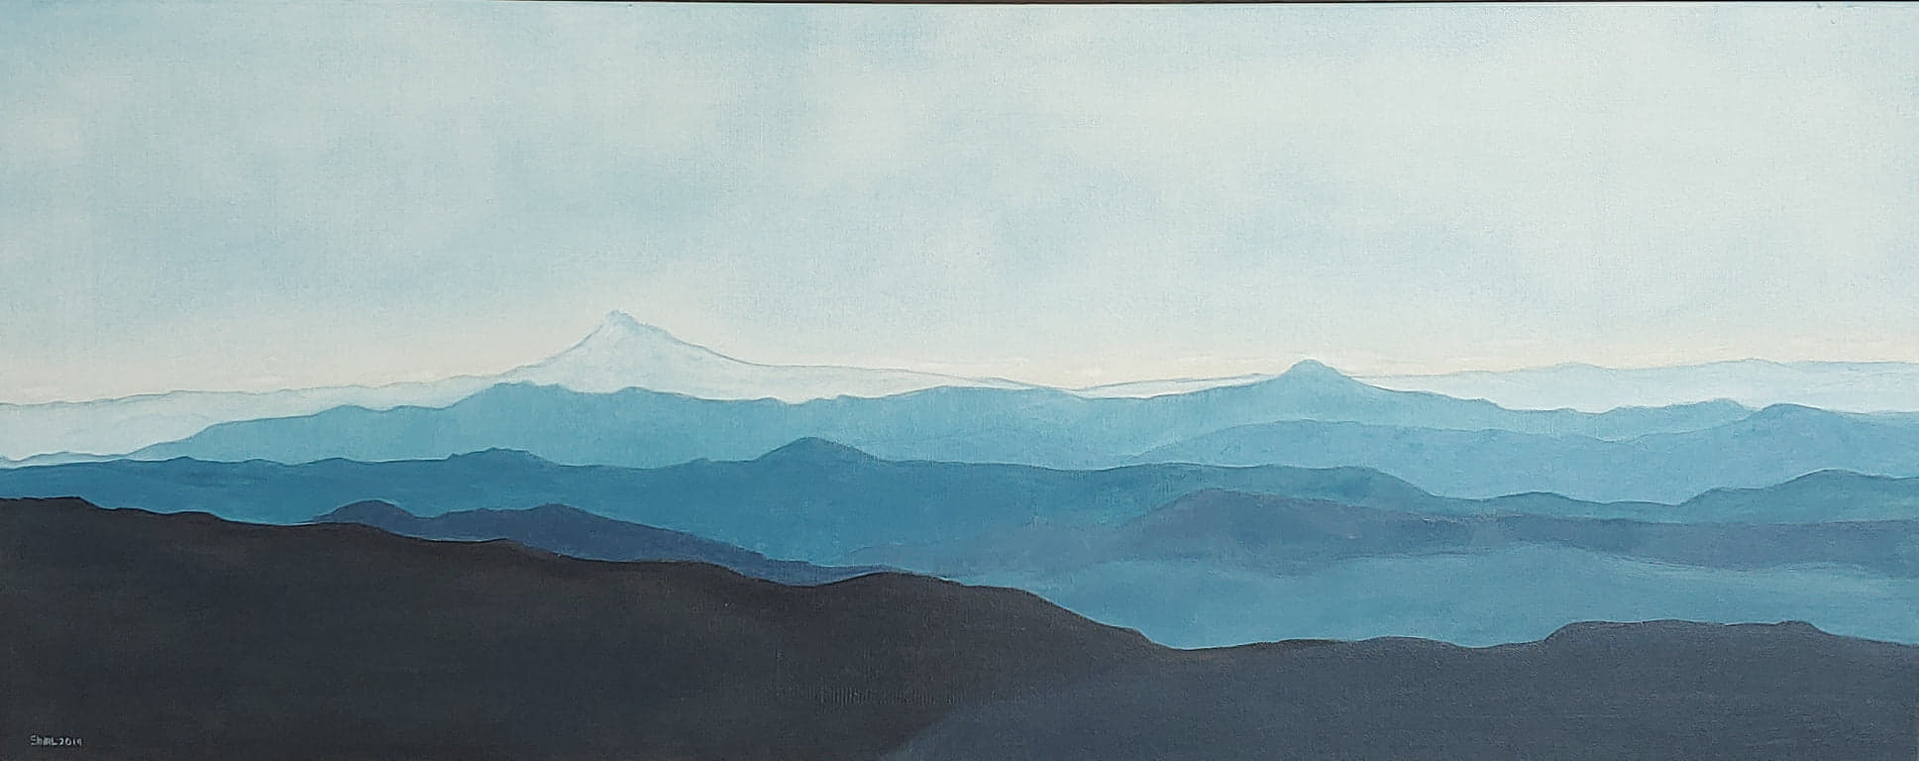 Mt. Hood by Shirley Hays (Yamhill, OR)